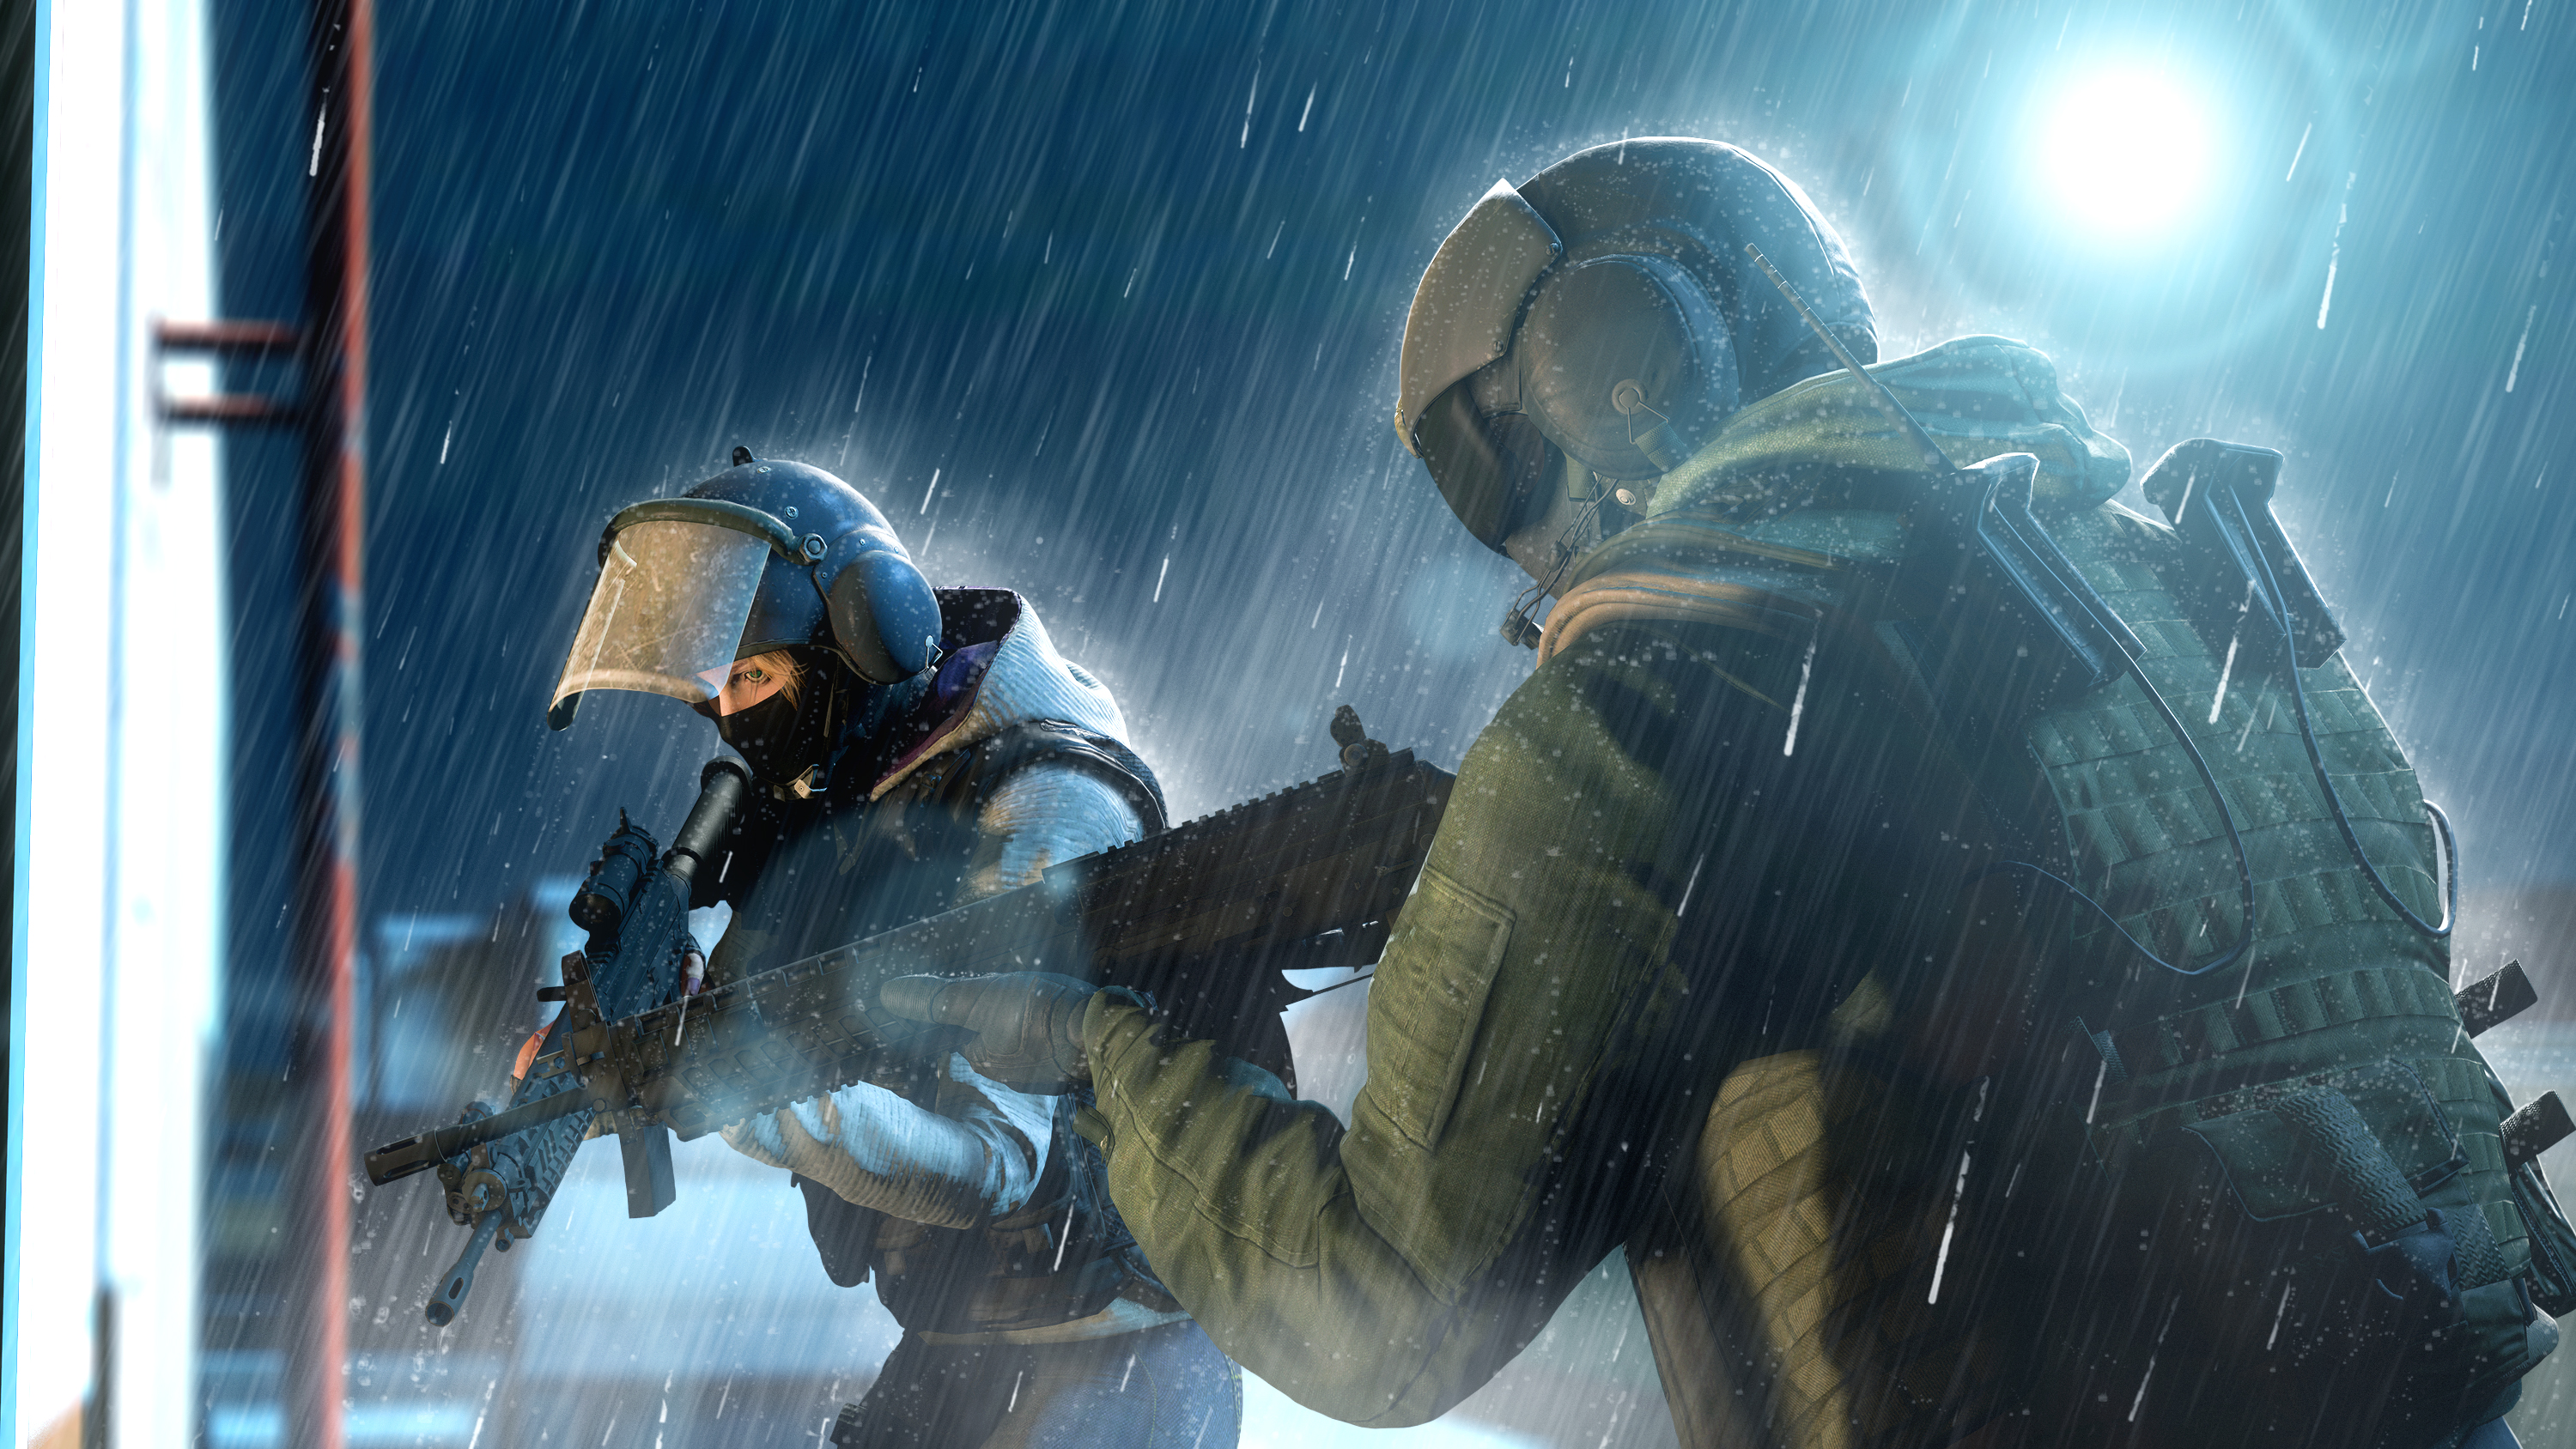 Rainbow Six Siege Wallpaper Hd: Rainbow Six Siege, HD Games, 4k Wallpapers, Images